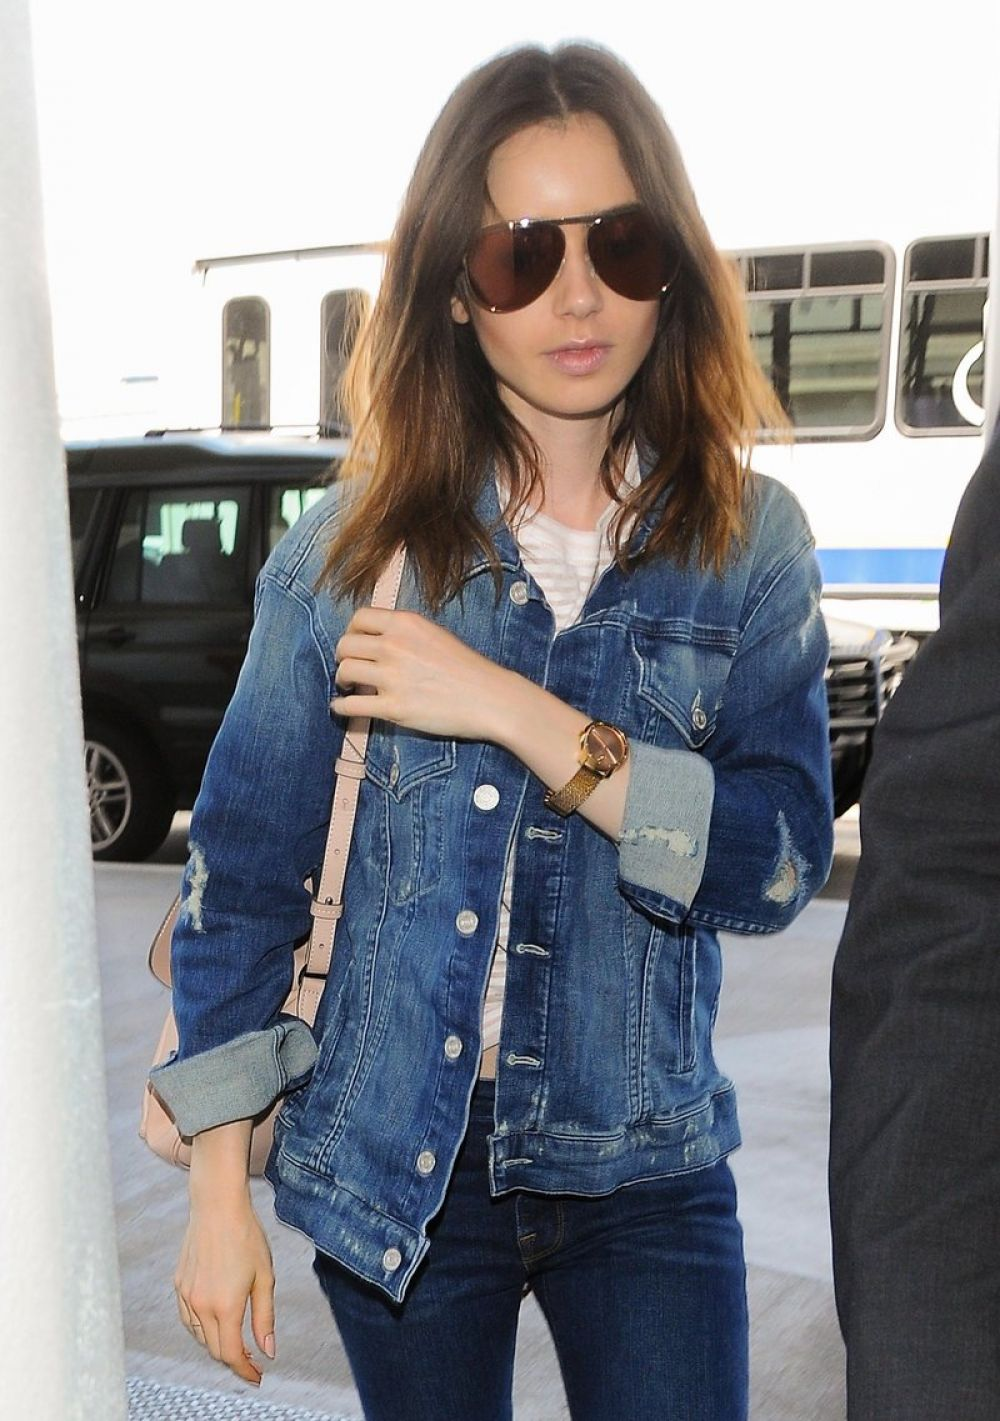 LILY COLLINS at Los Angeles International Airport 07/13/2017